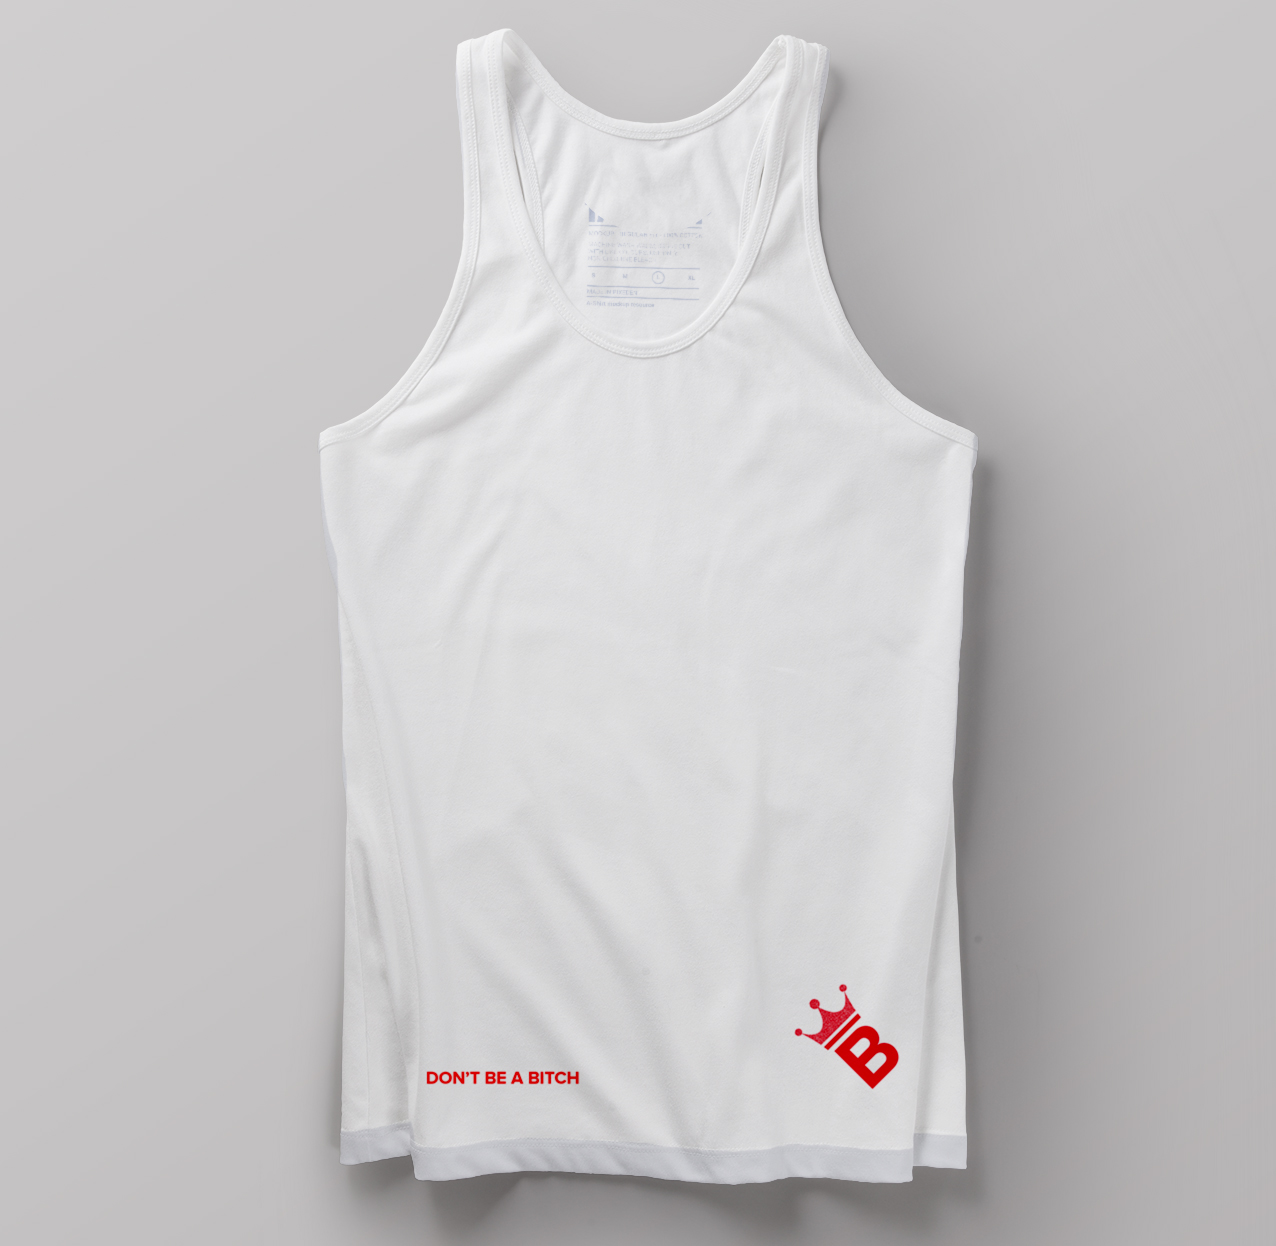 oncue unisex tank top mock up quilan arnold